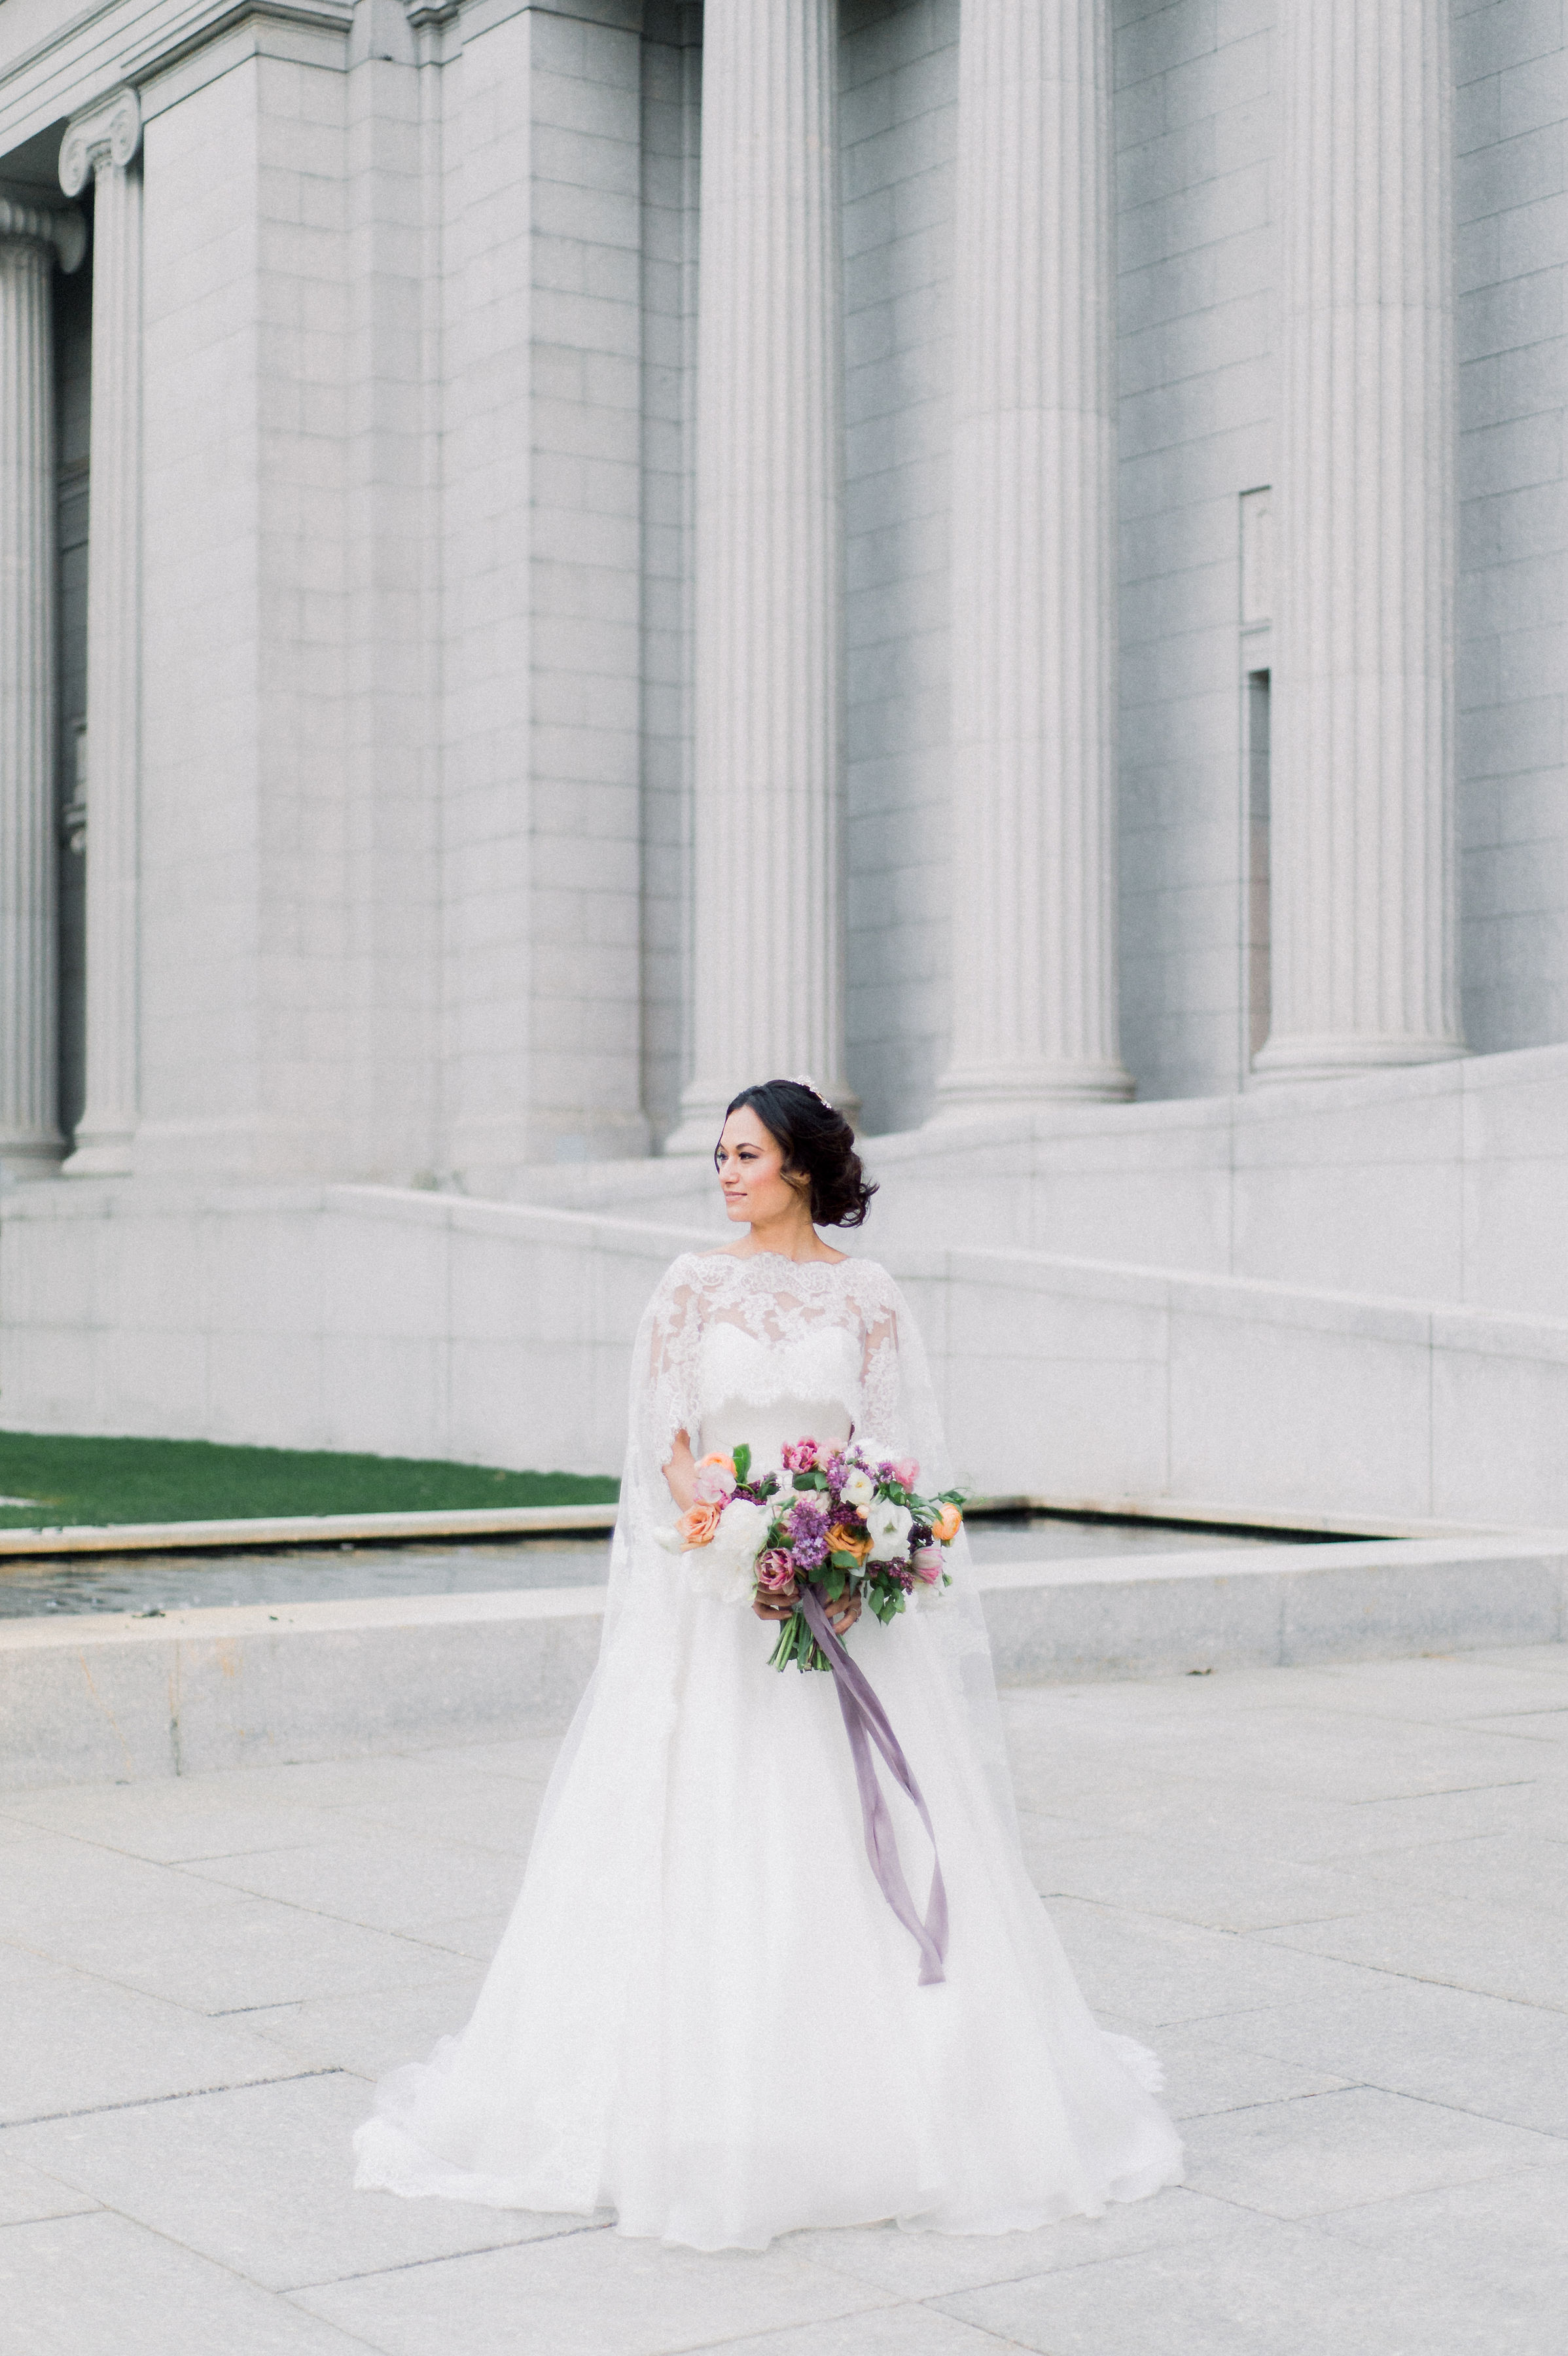 Ethereal Bridal Romance Inspiration at the Museum of Fine Arts in Boston, MA